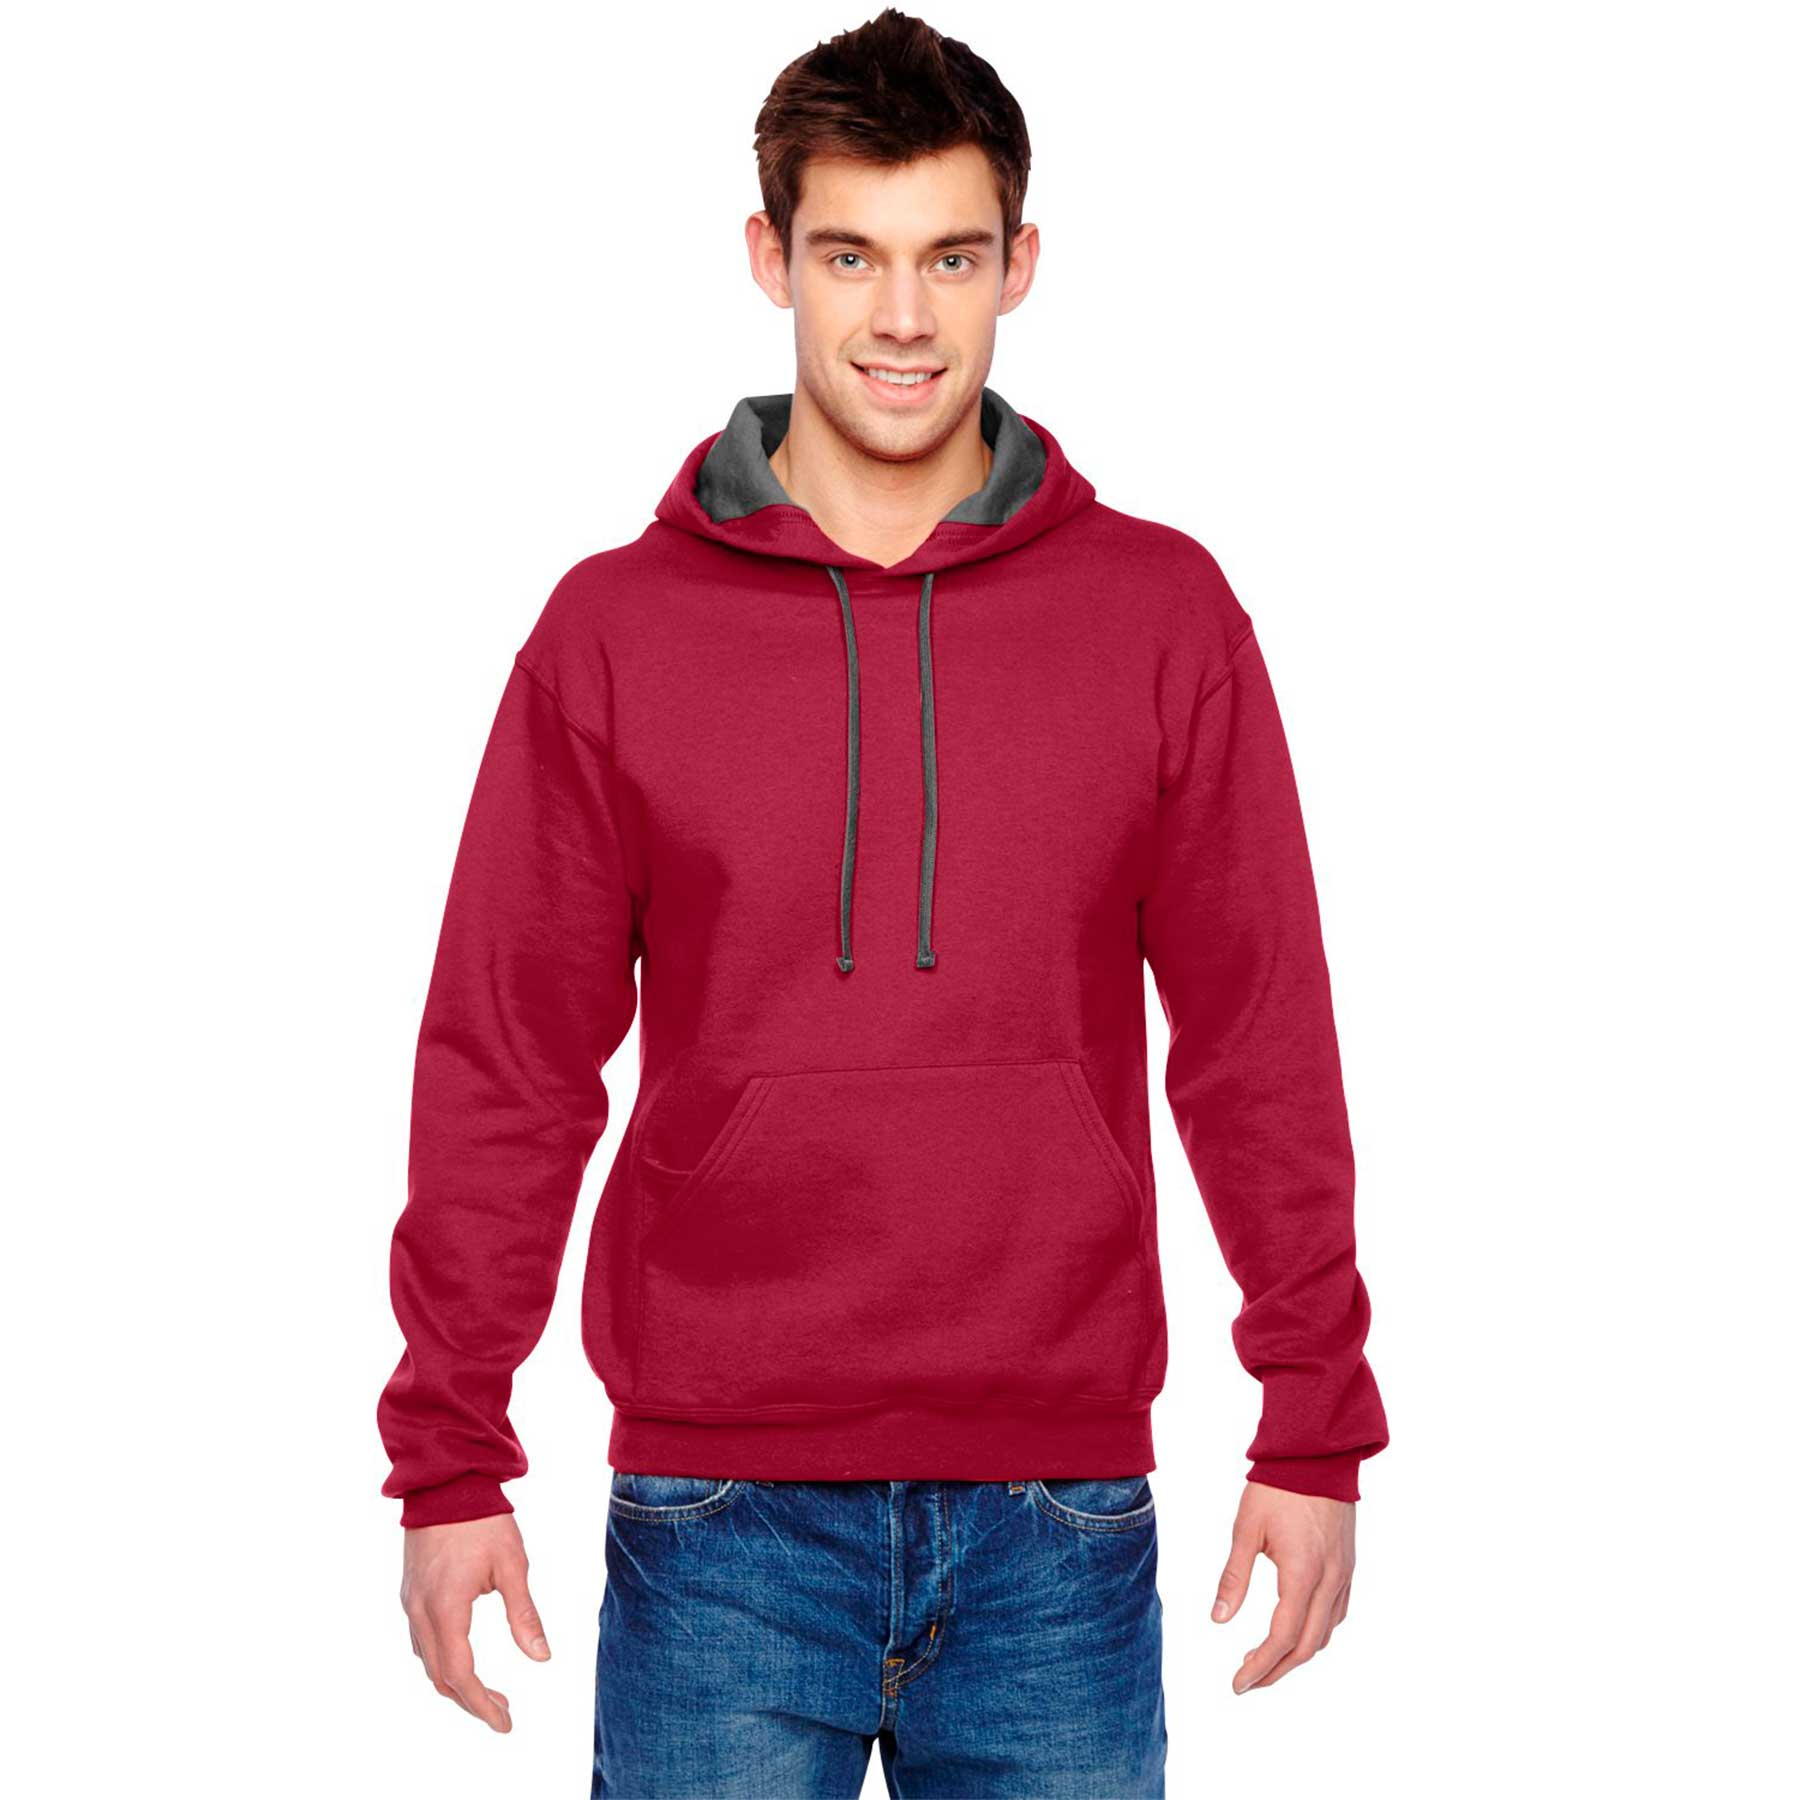 Apparel Catalog Hoodies